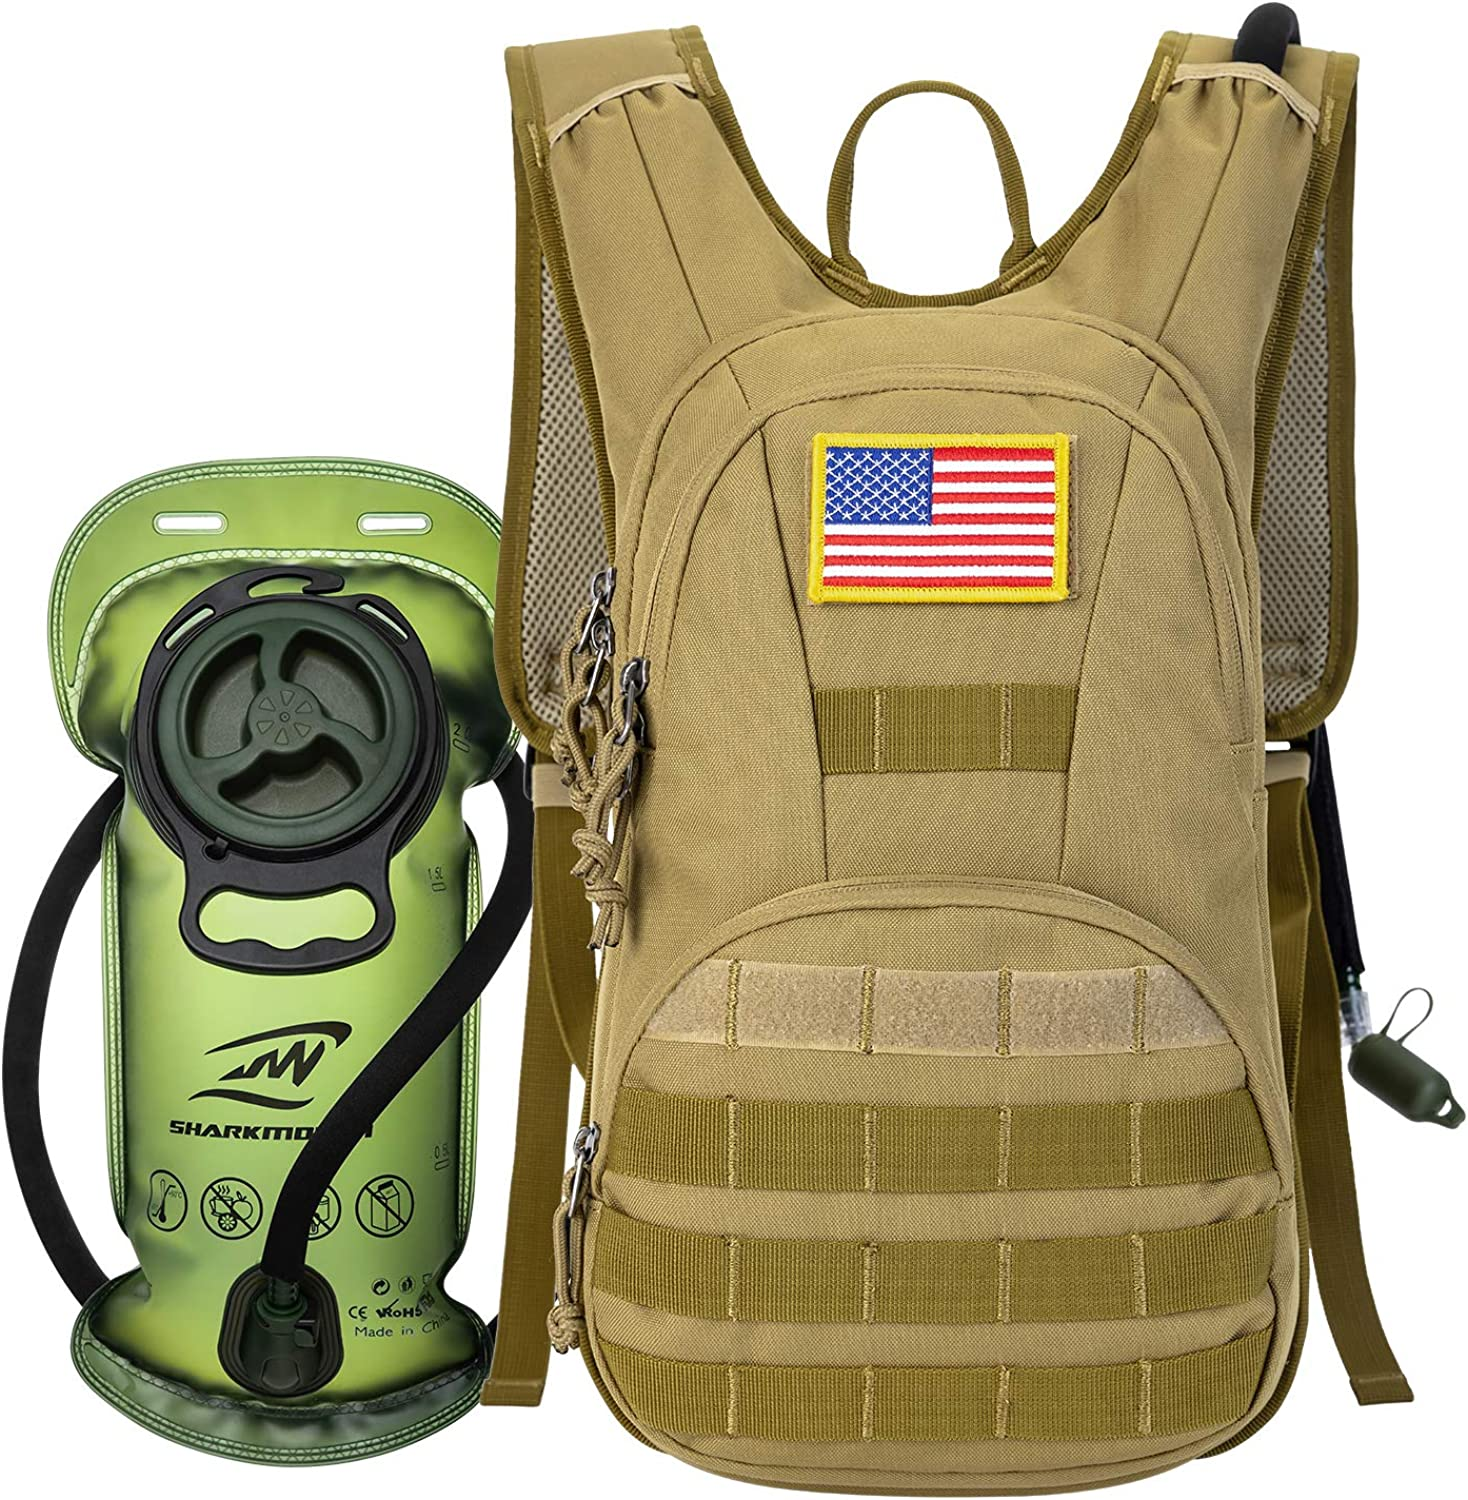 SHARKMOUTH Hydration Pack, Tactical Molle Hydration Pack Backpack 900D with 2L BPA Free Hydration Water Bladder, Military Daypack for Running, Hiking, Cycling, Climbing, Hunting &Working Out